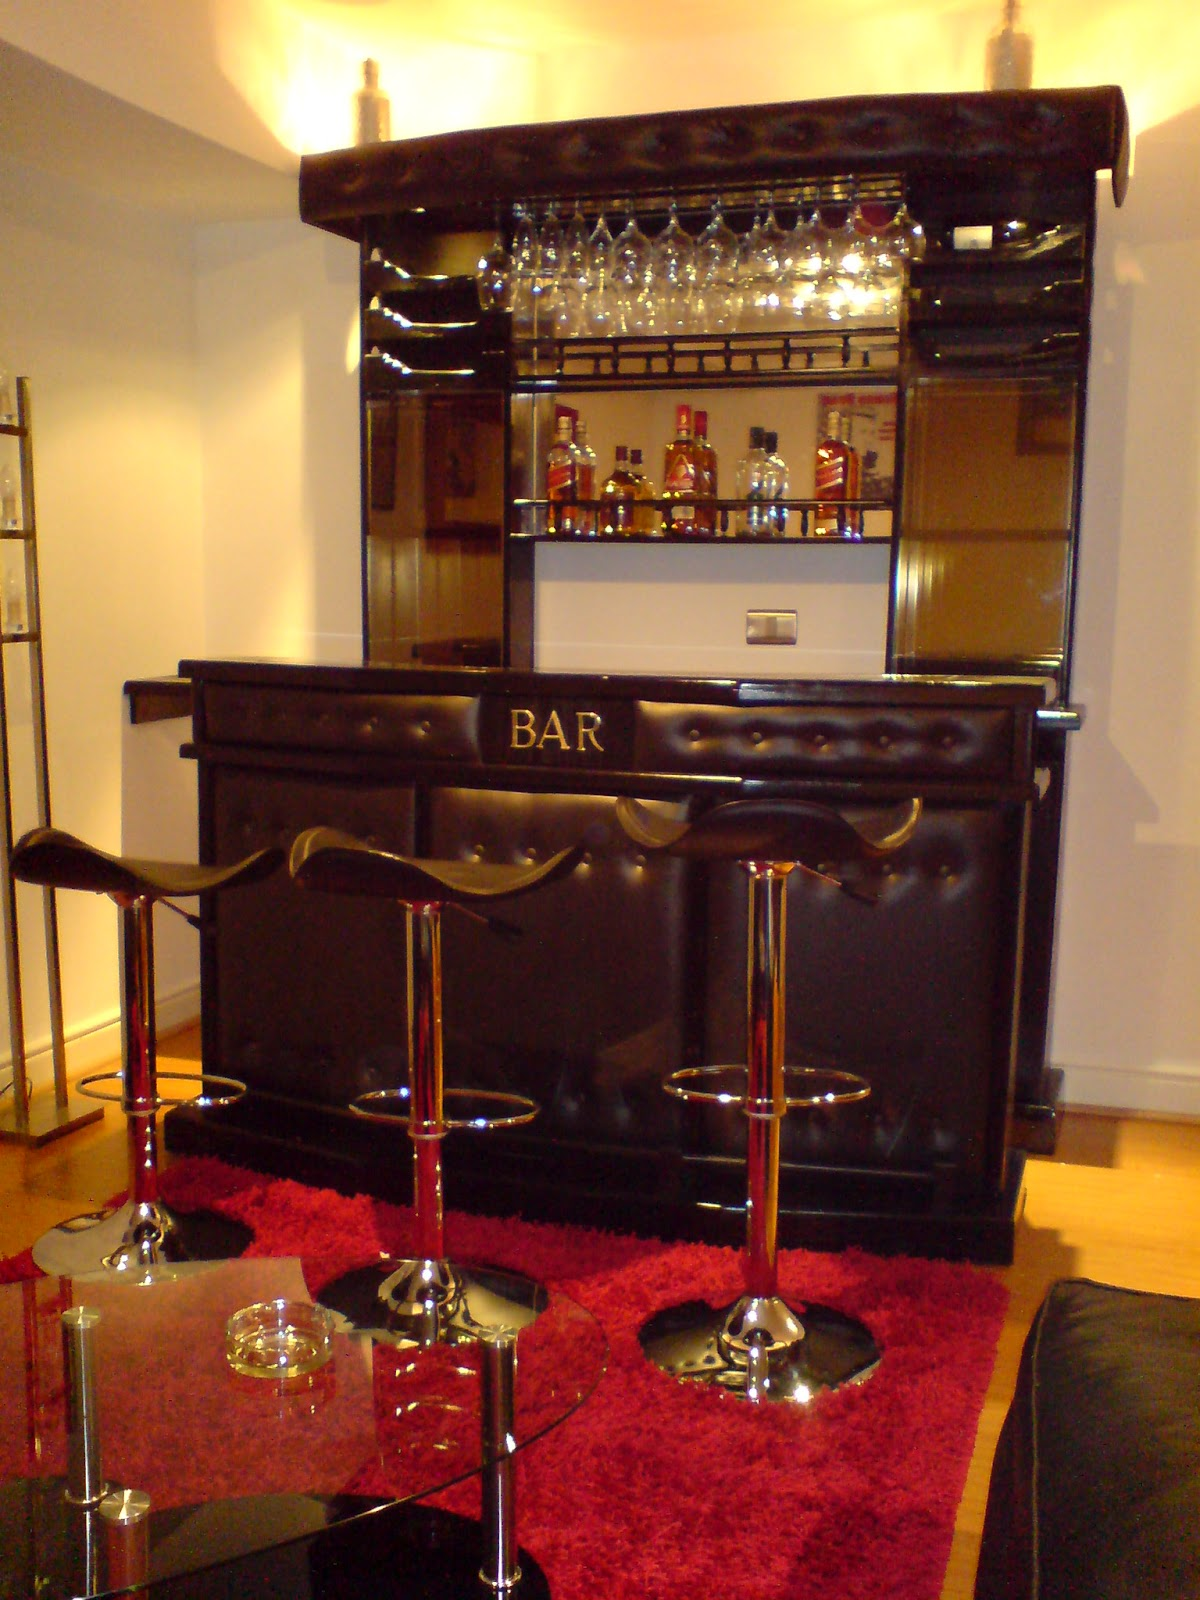 Muebles j m valdivia bar frontal for Mueble bar esquinero